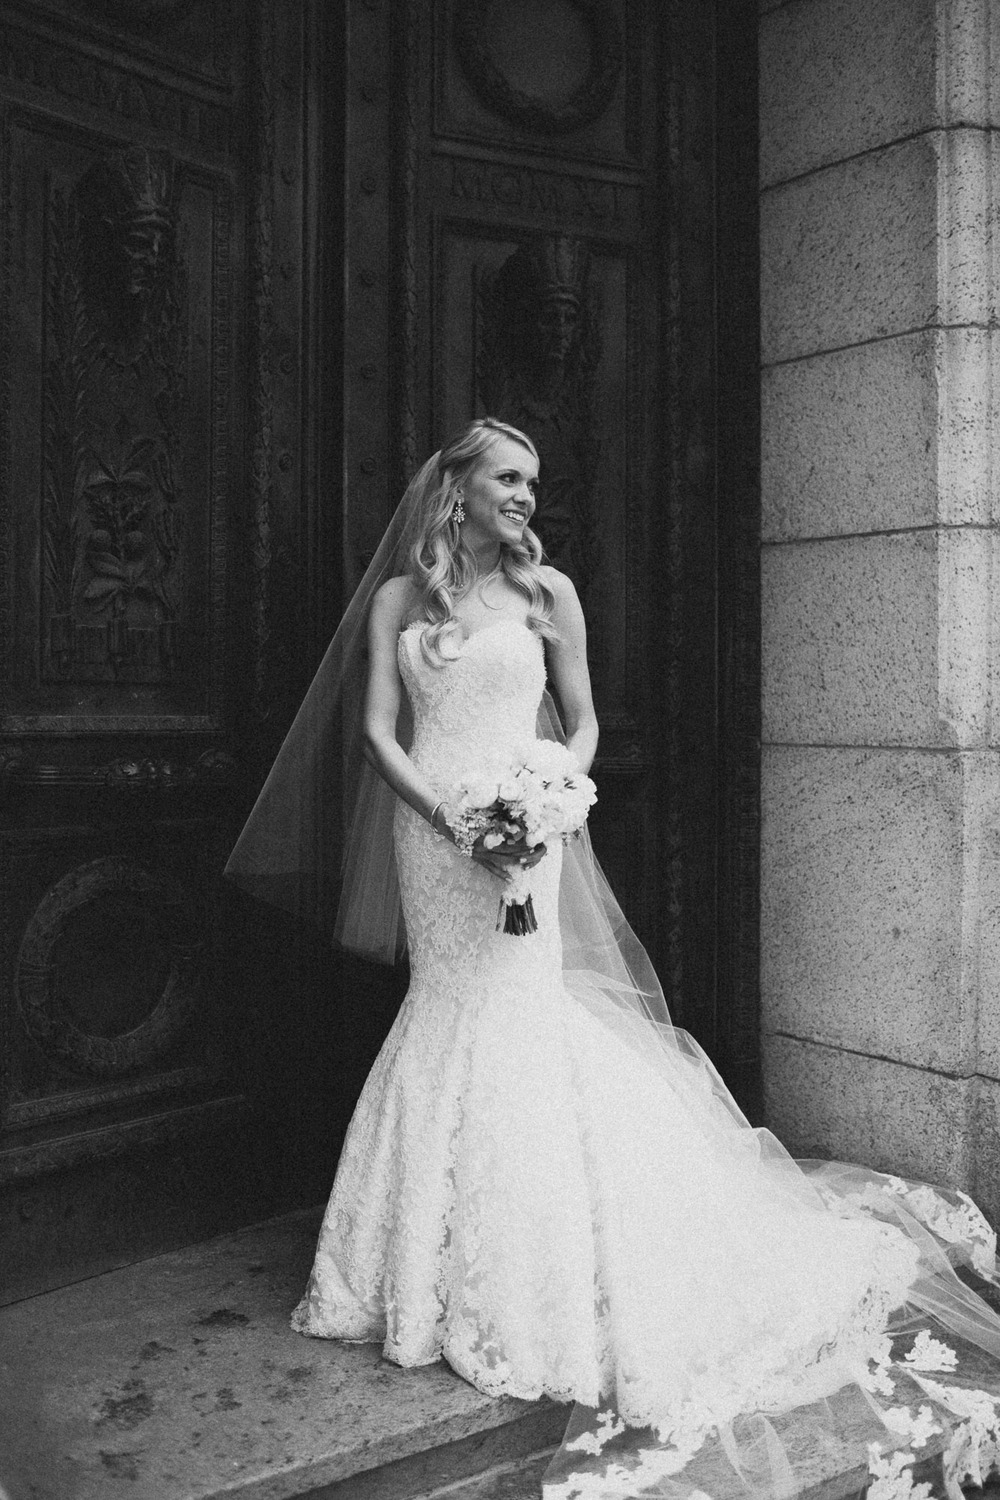 Alana-David-Cleveland-Old-Courthouse-Wedding-134@2x.jpg